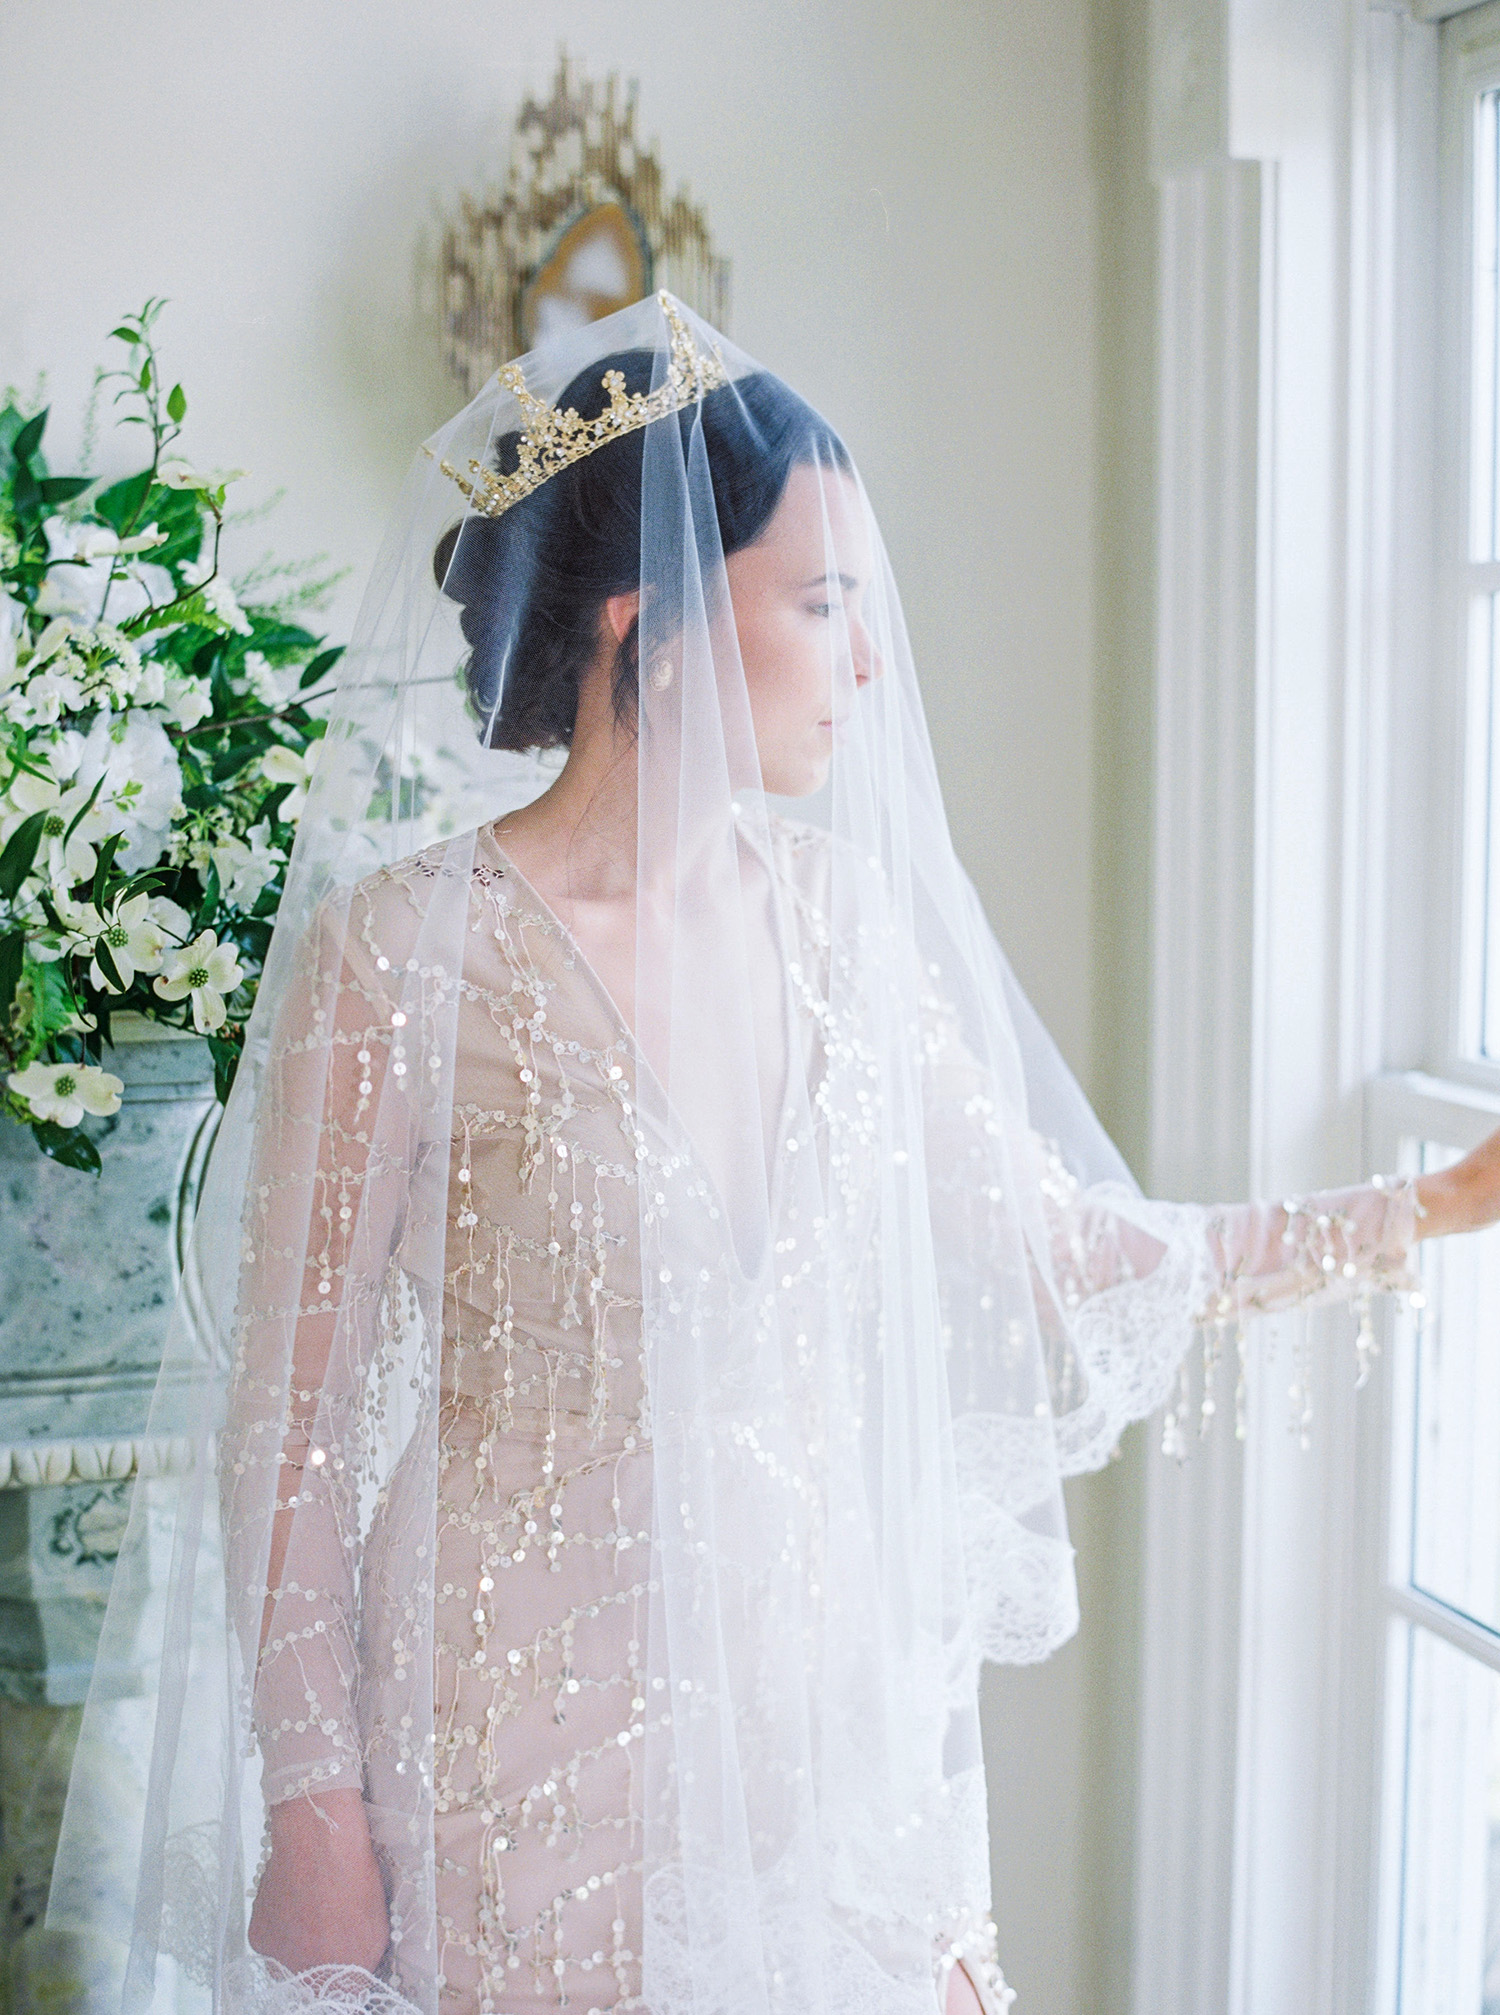 evan dustin vow renewal bride with veil and crown